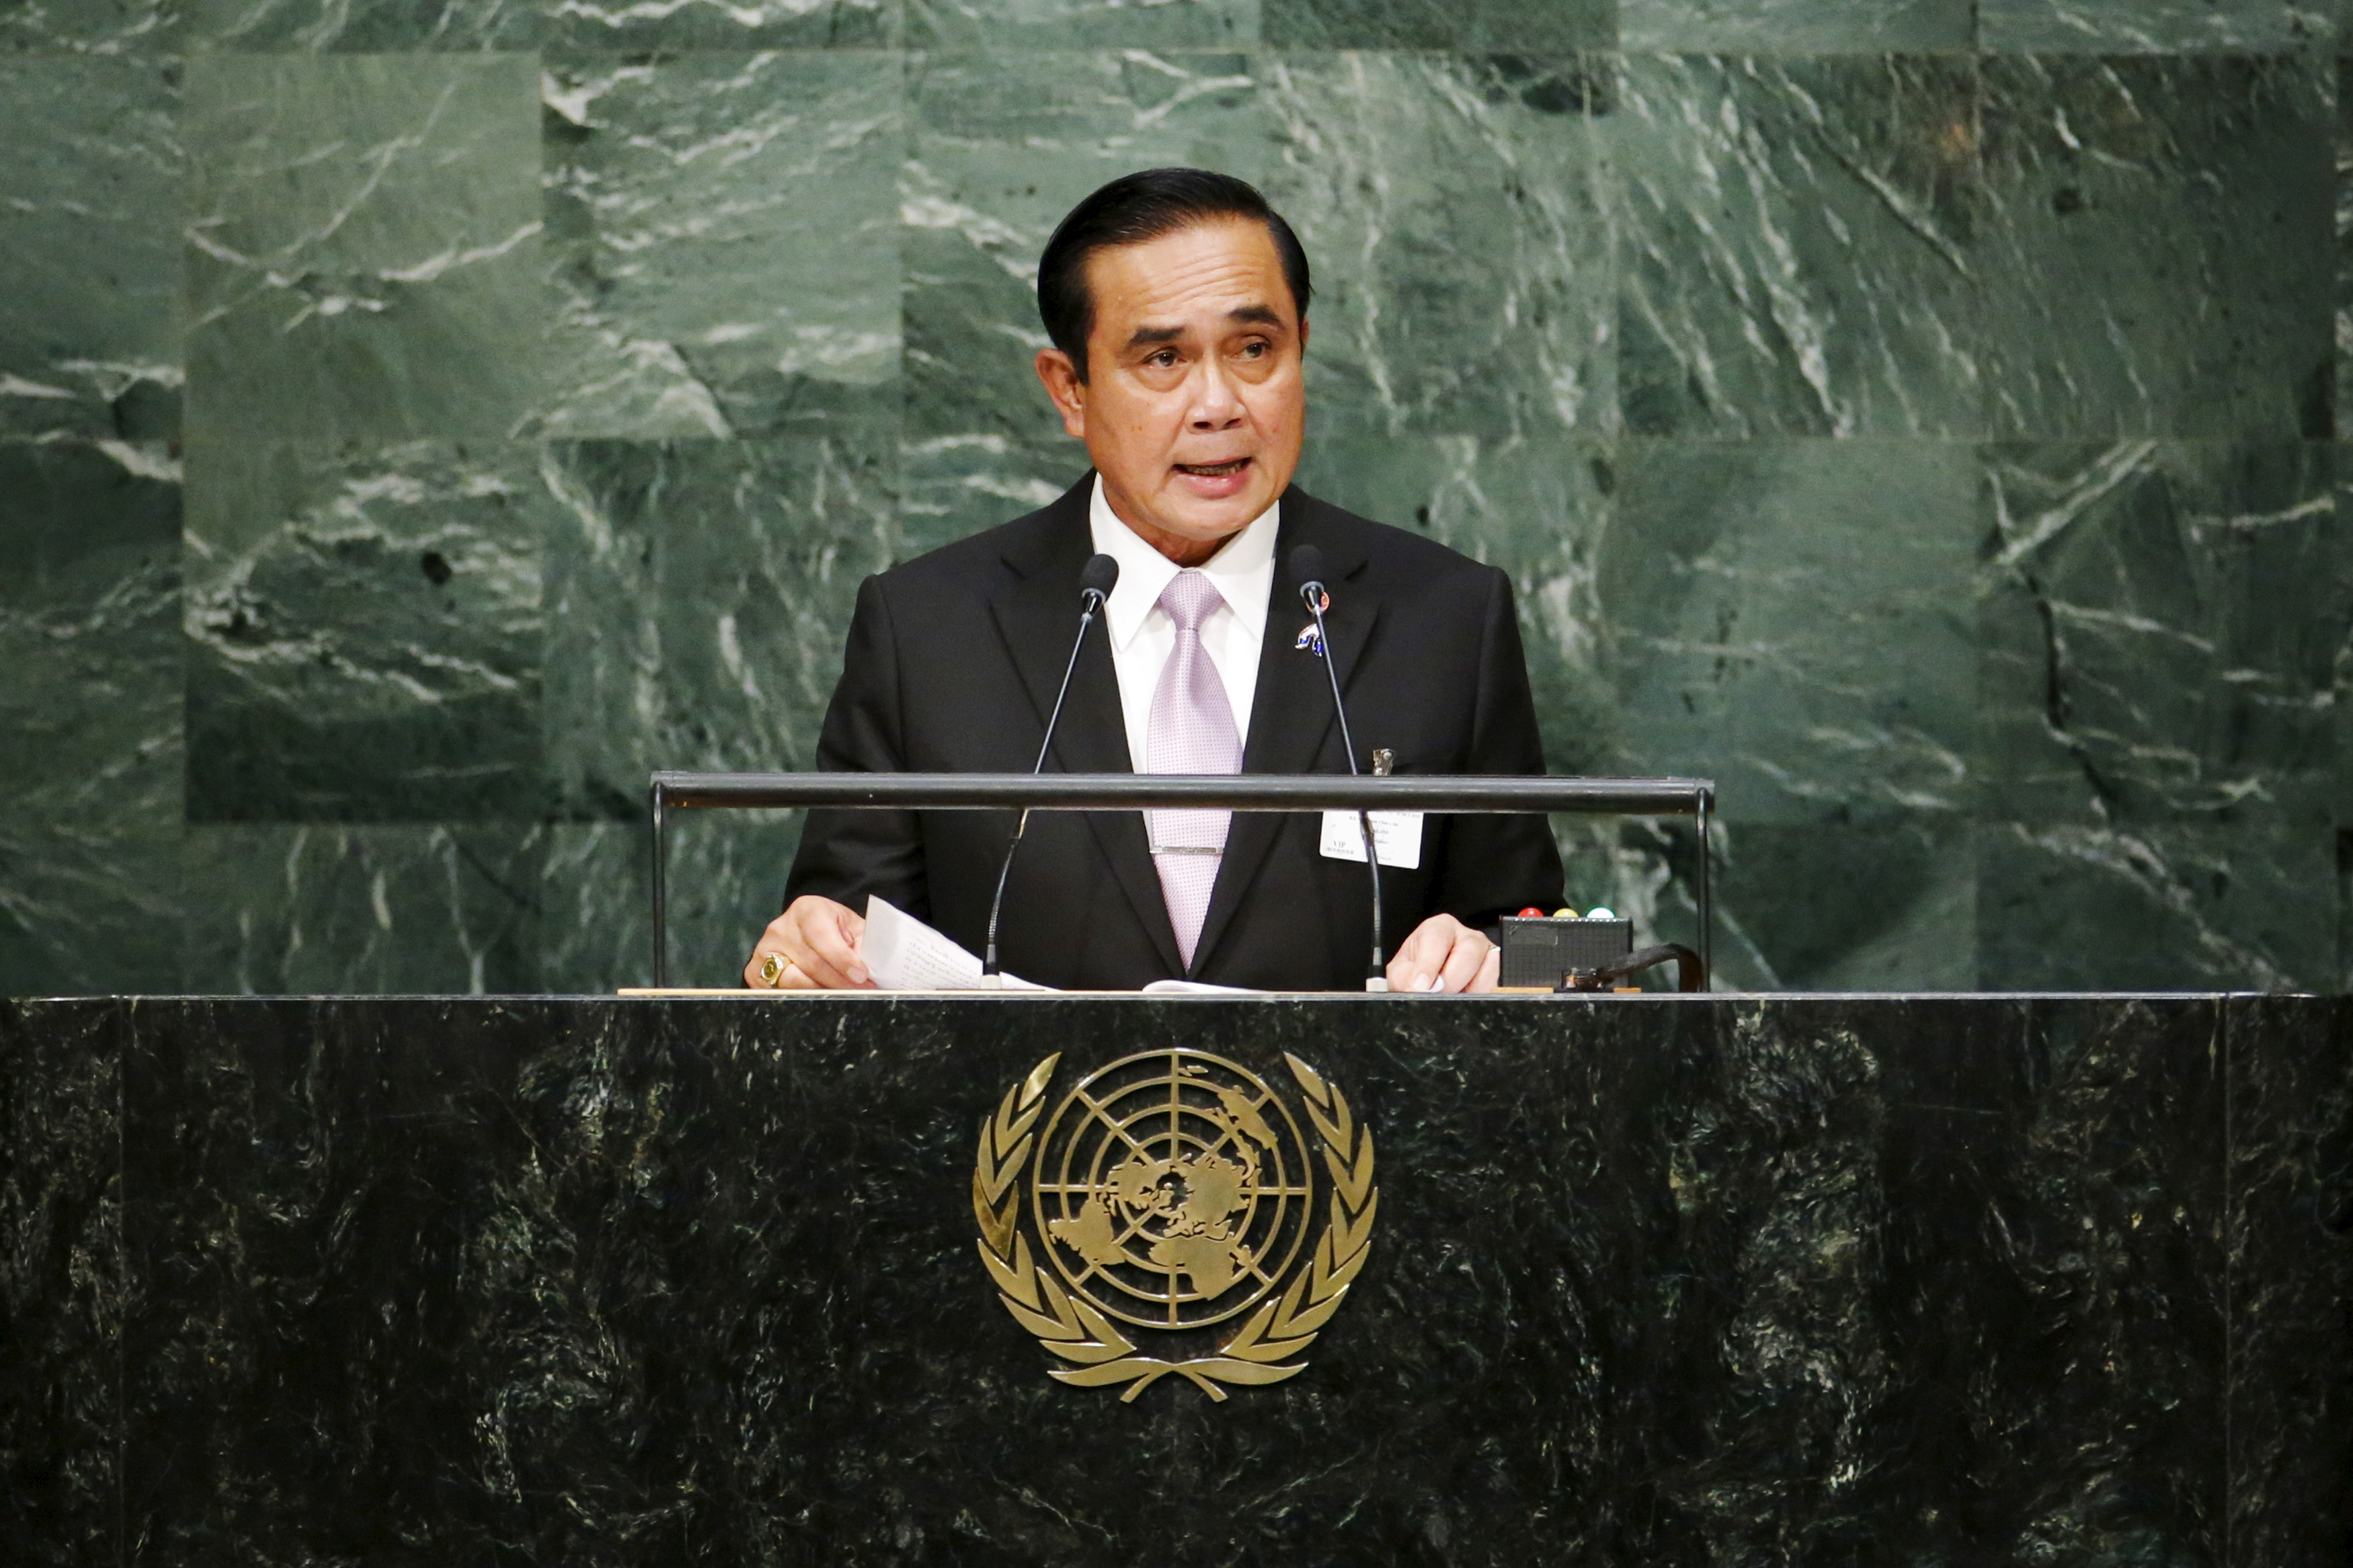 Thailand's Prime Minister Prayuth Chan-ocha speaks before attendees during the 70th session of the U.N. General Assembly in New York City on Sept. 29, 2015